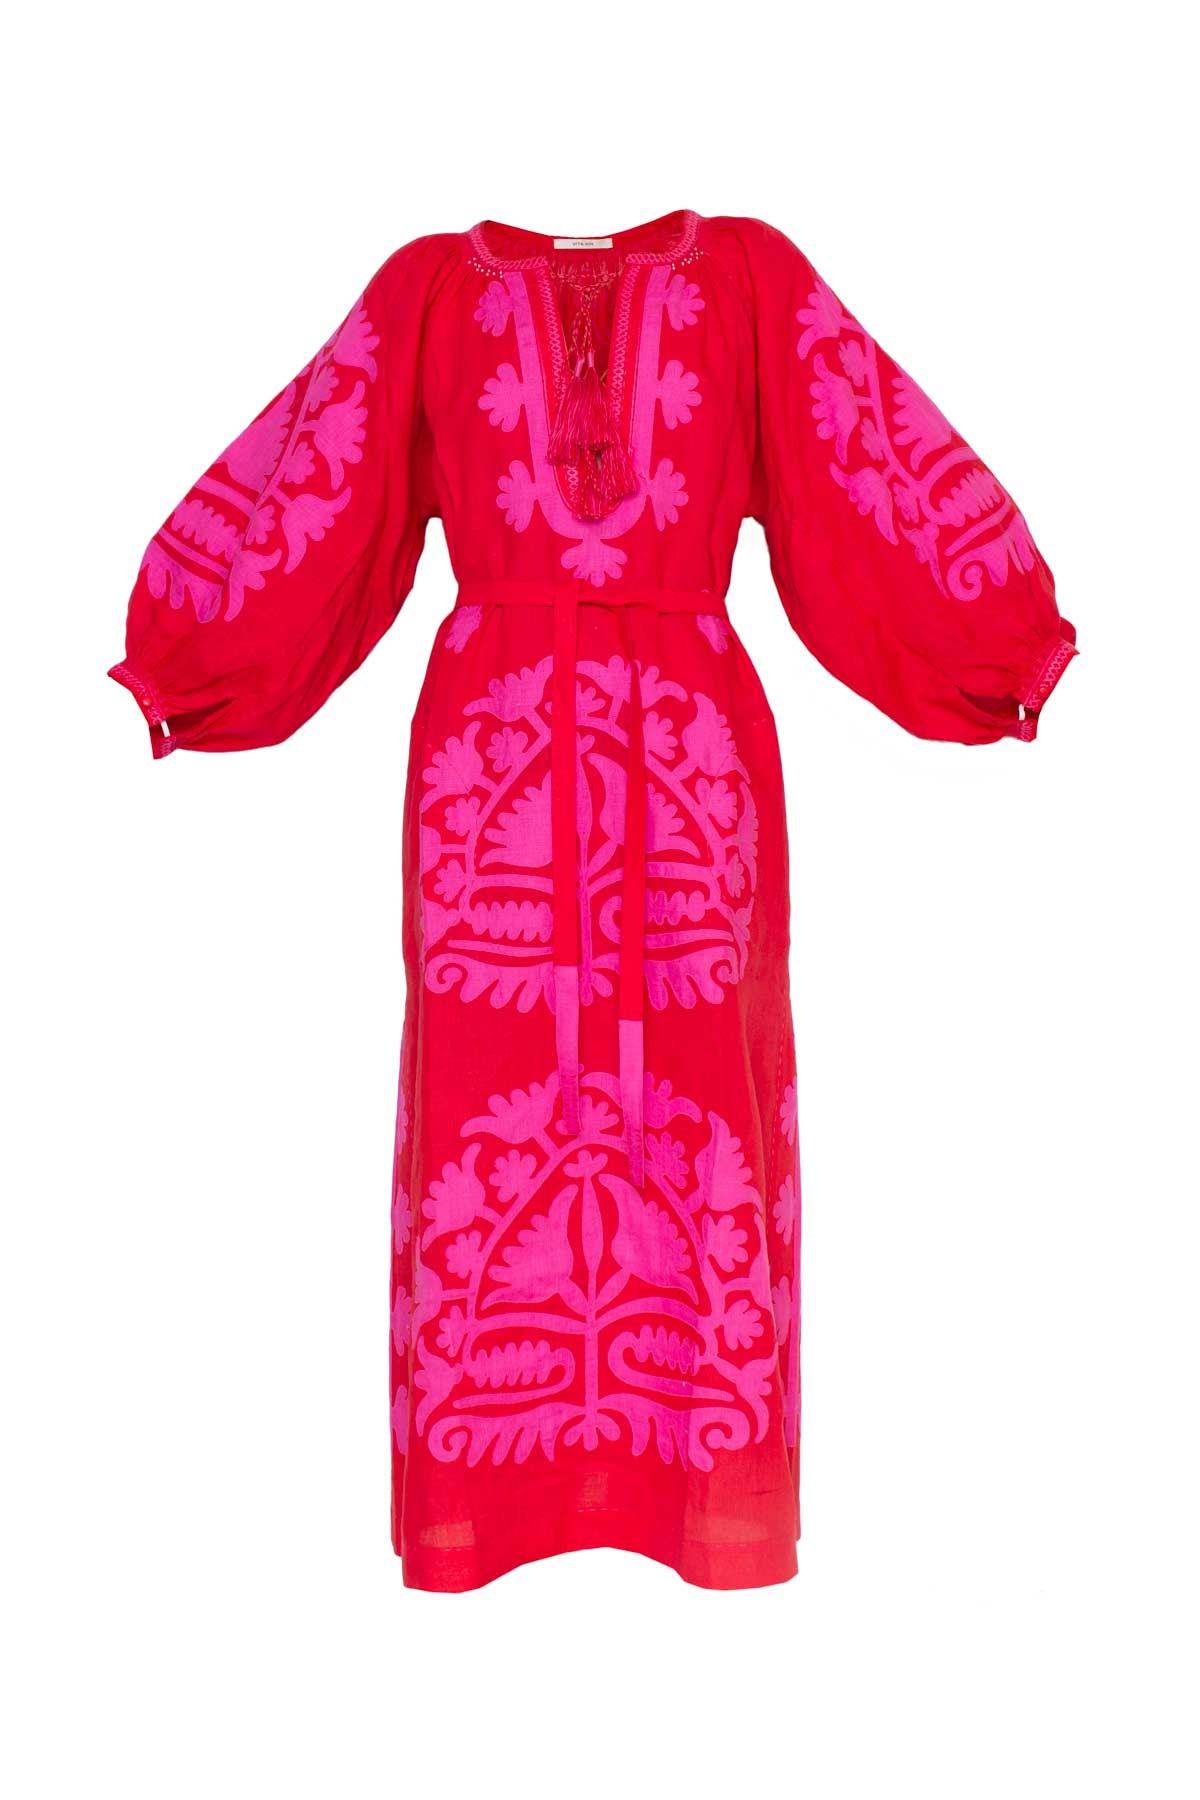 Shalimar Dress - Red & Fuchsia